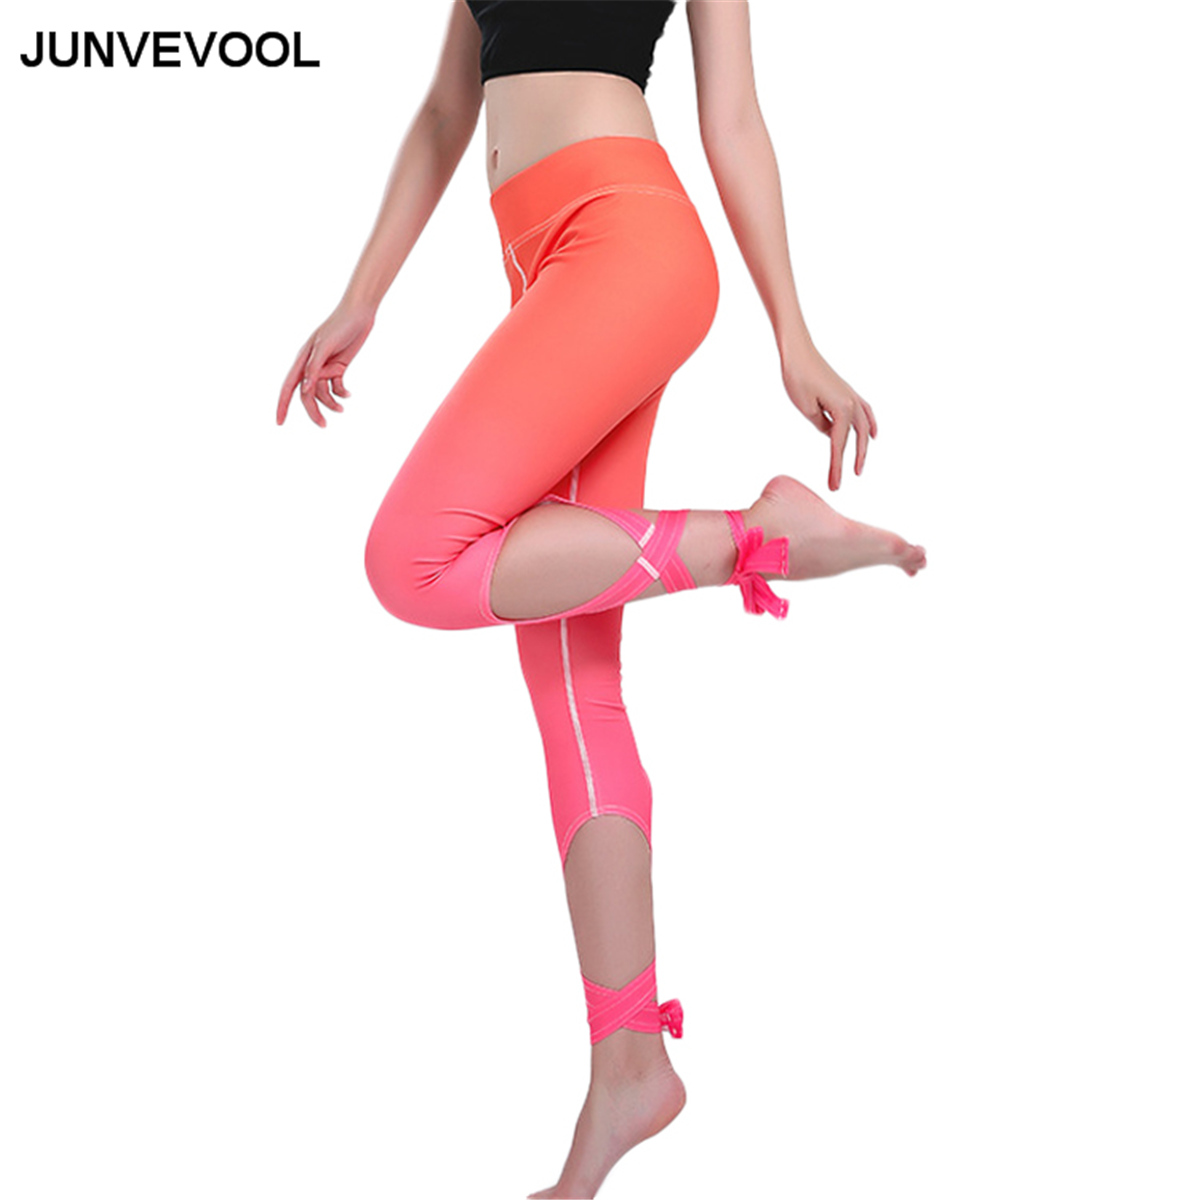 Punk Rock Leggings Women Fitness Legging Gothic Bandage Workout Legins Sexy Femme Bandages Harajuku Pant Capris Legging Trouser